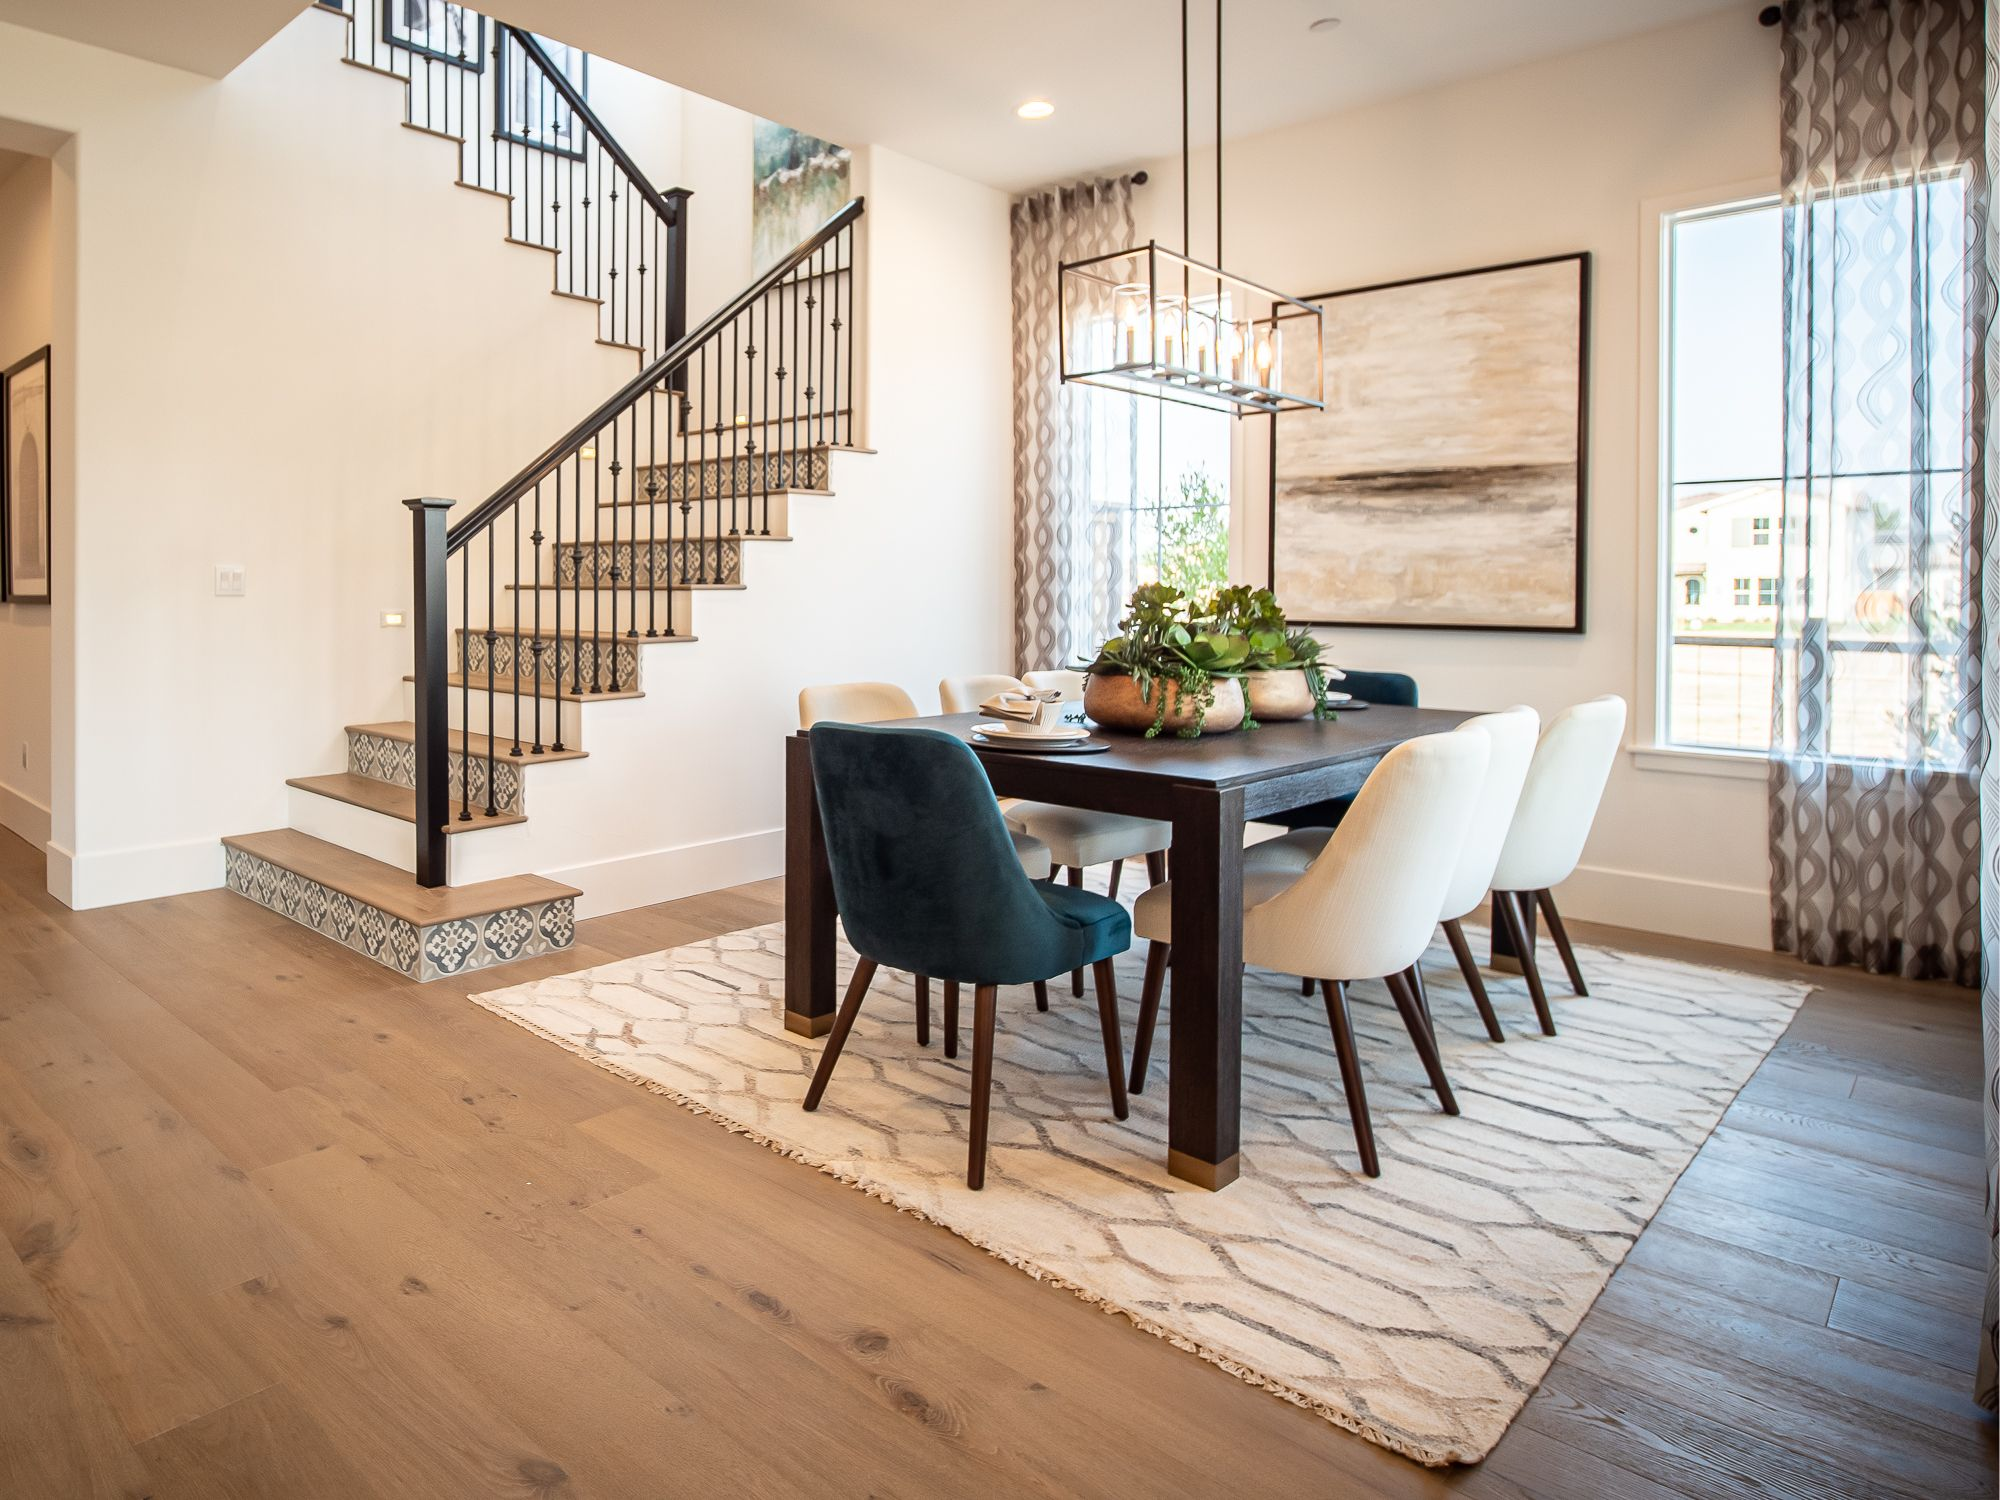 Living Area featured in the Alley Row Collection Residence 8 By BlackPine Communites